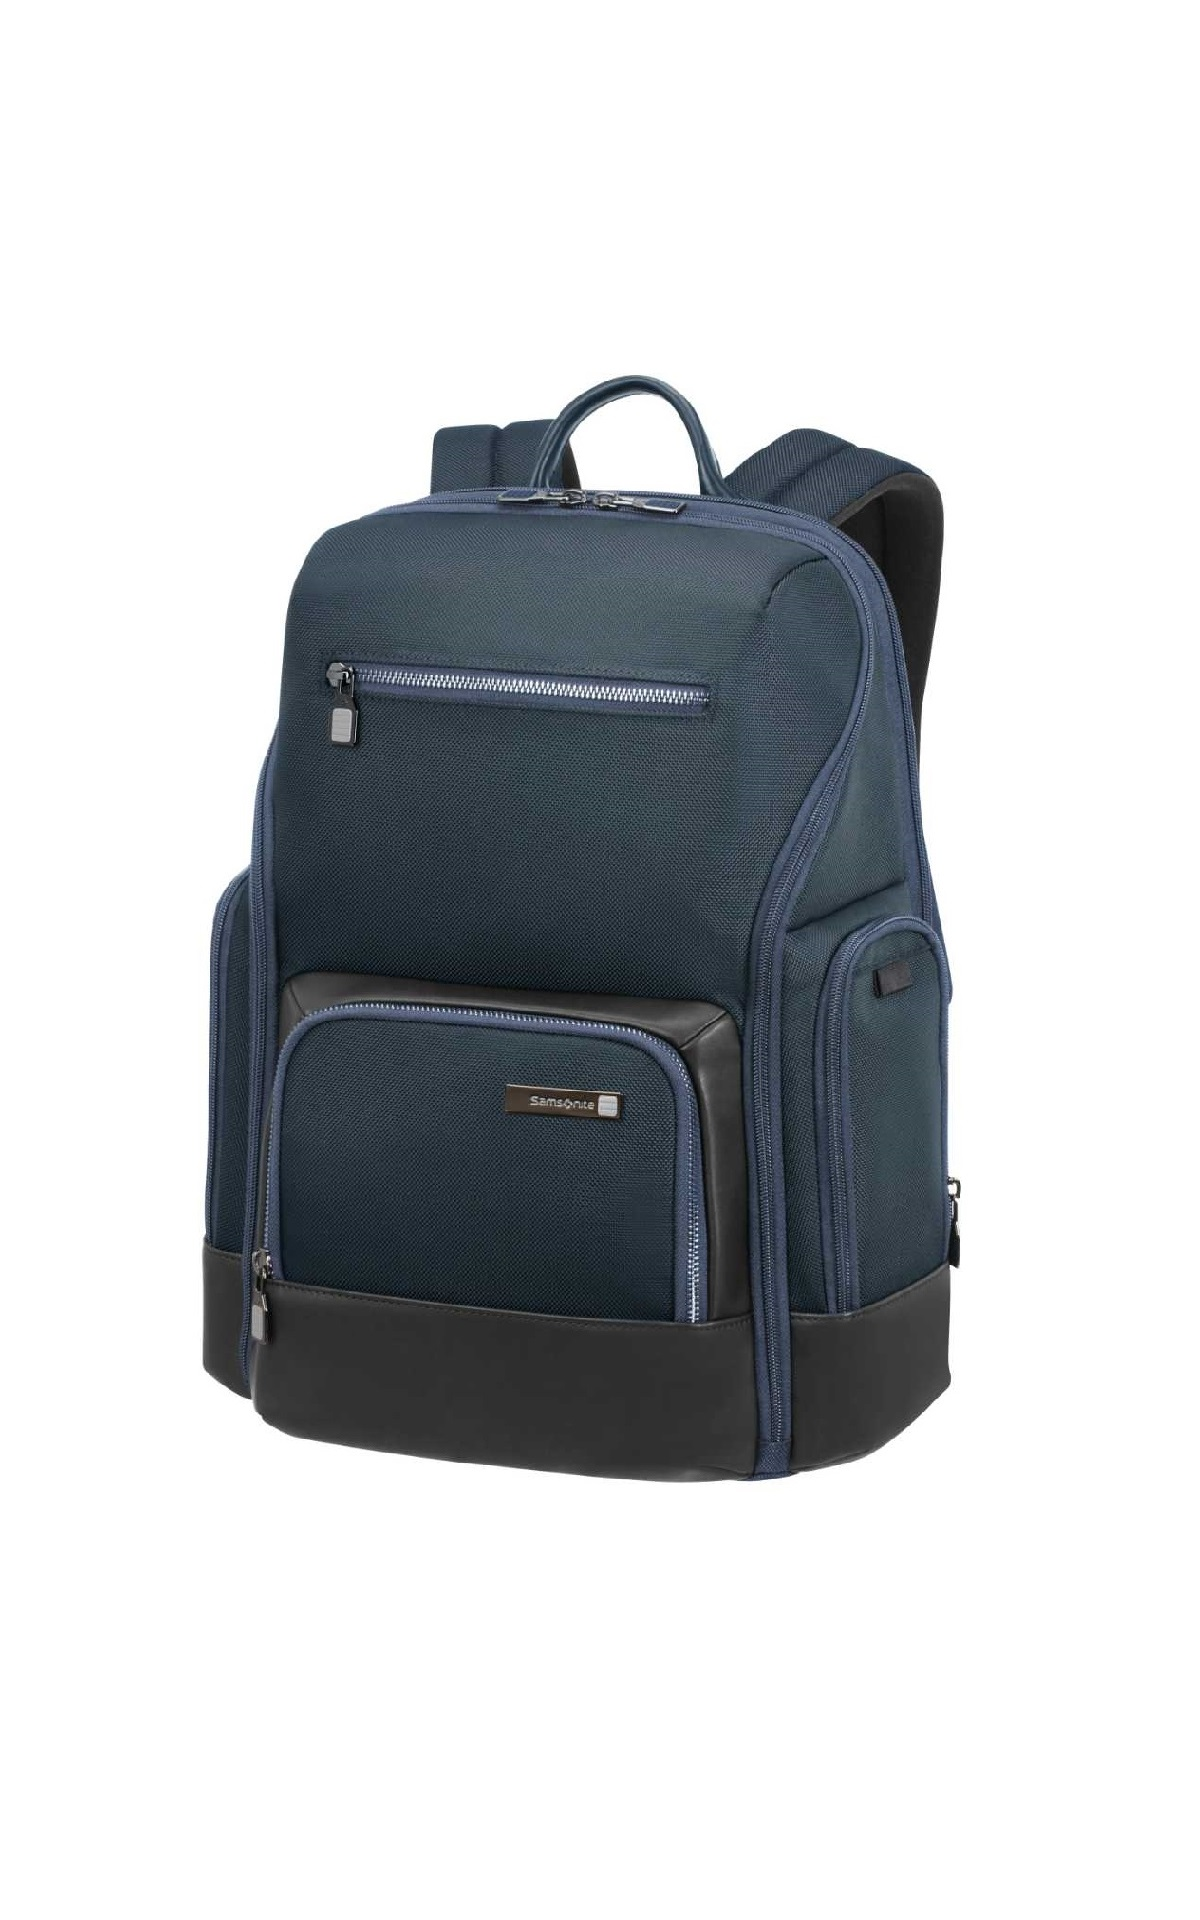 Safton backpack Samsonite